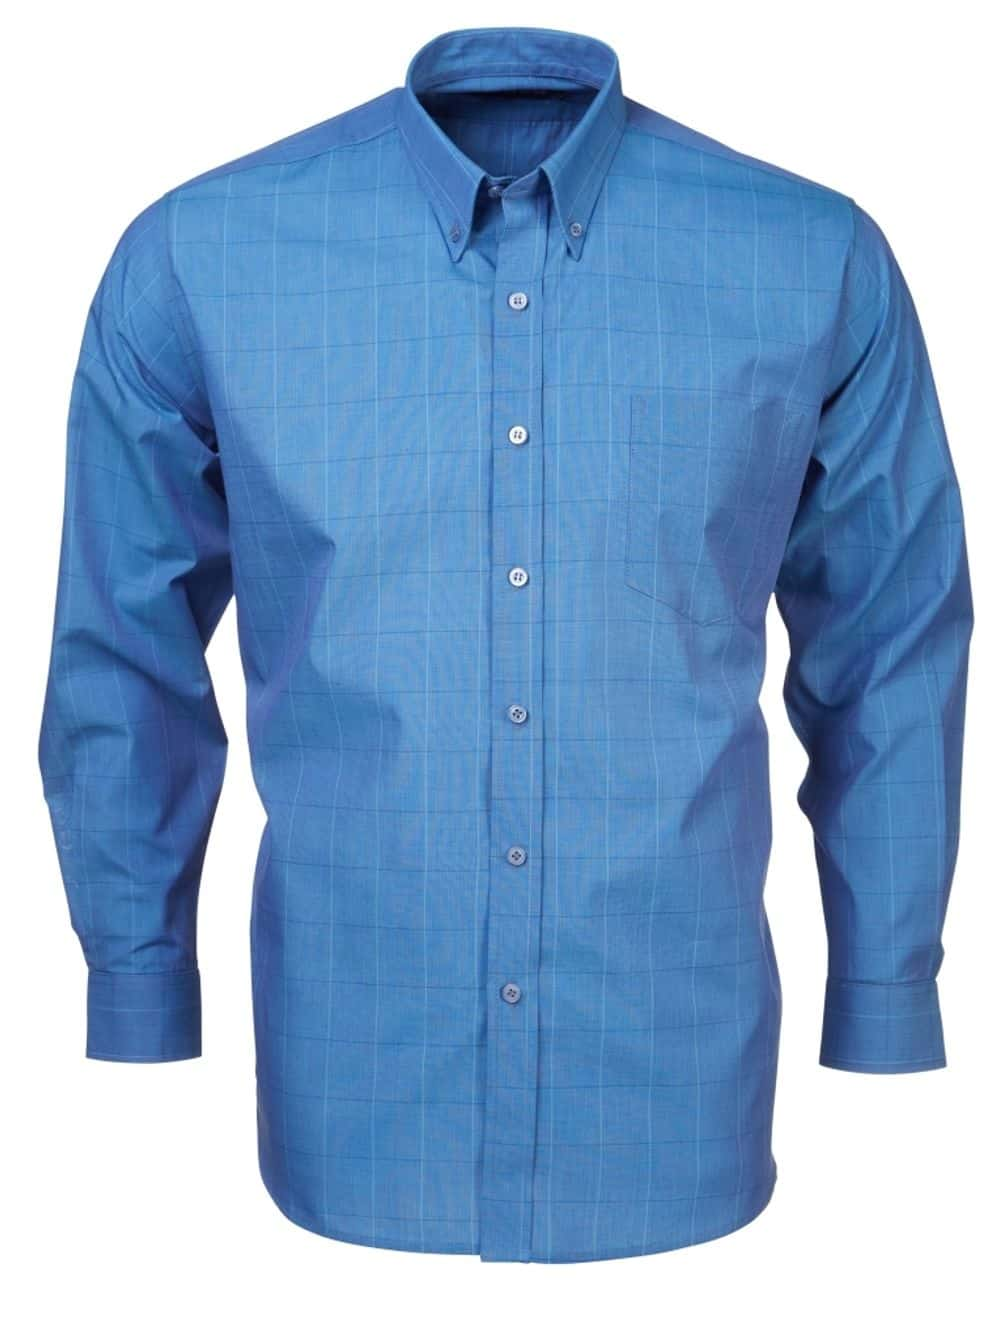 Checked Shirt WS11L Lounge Shirts and Blouses